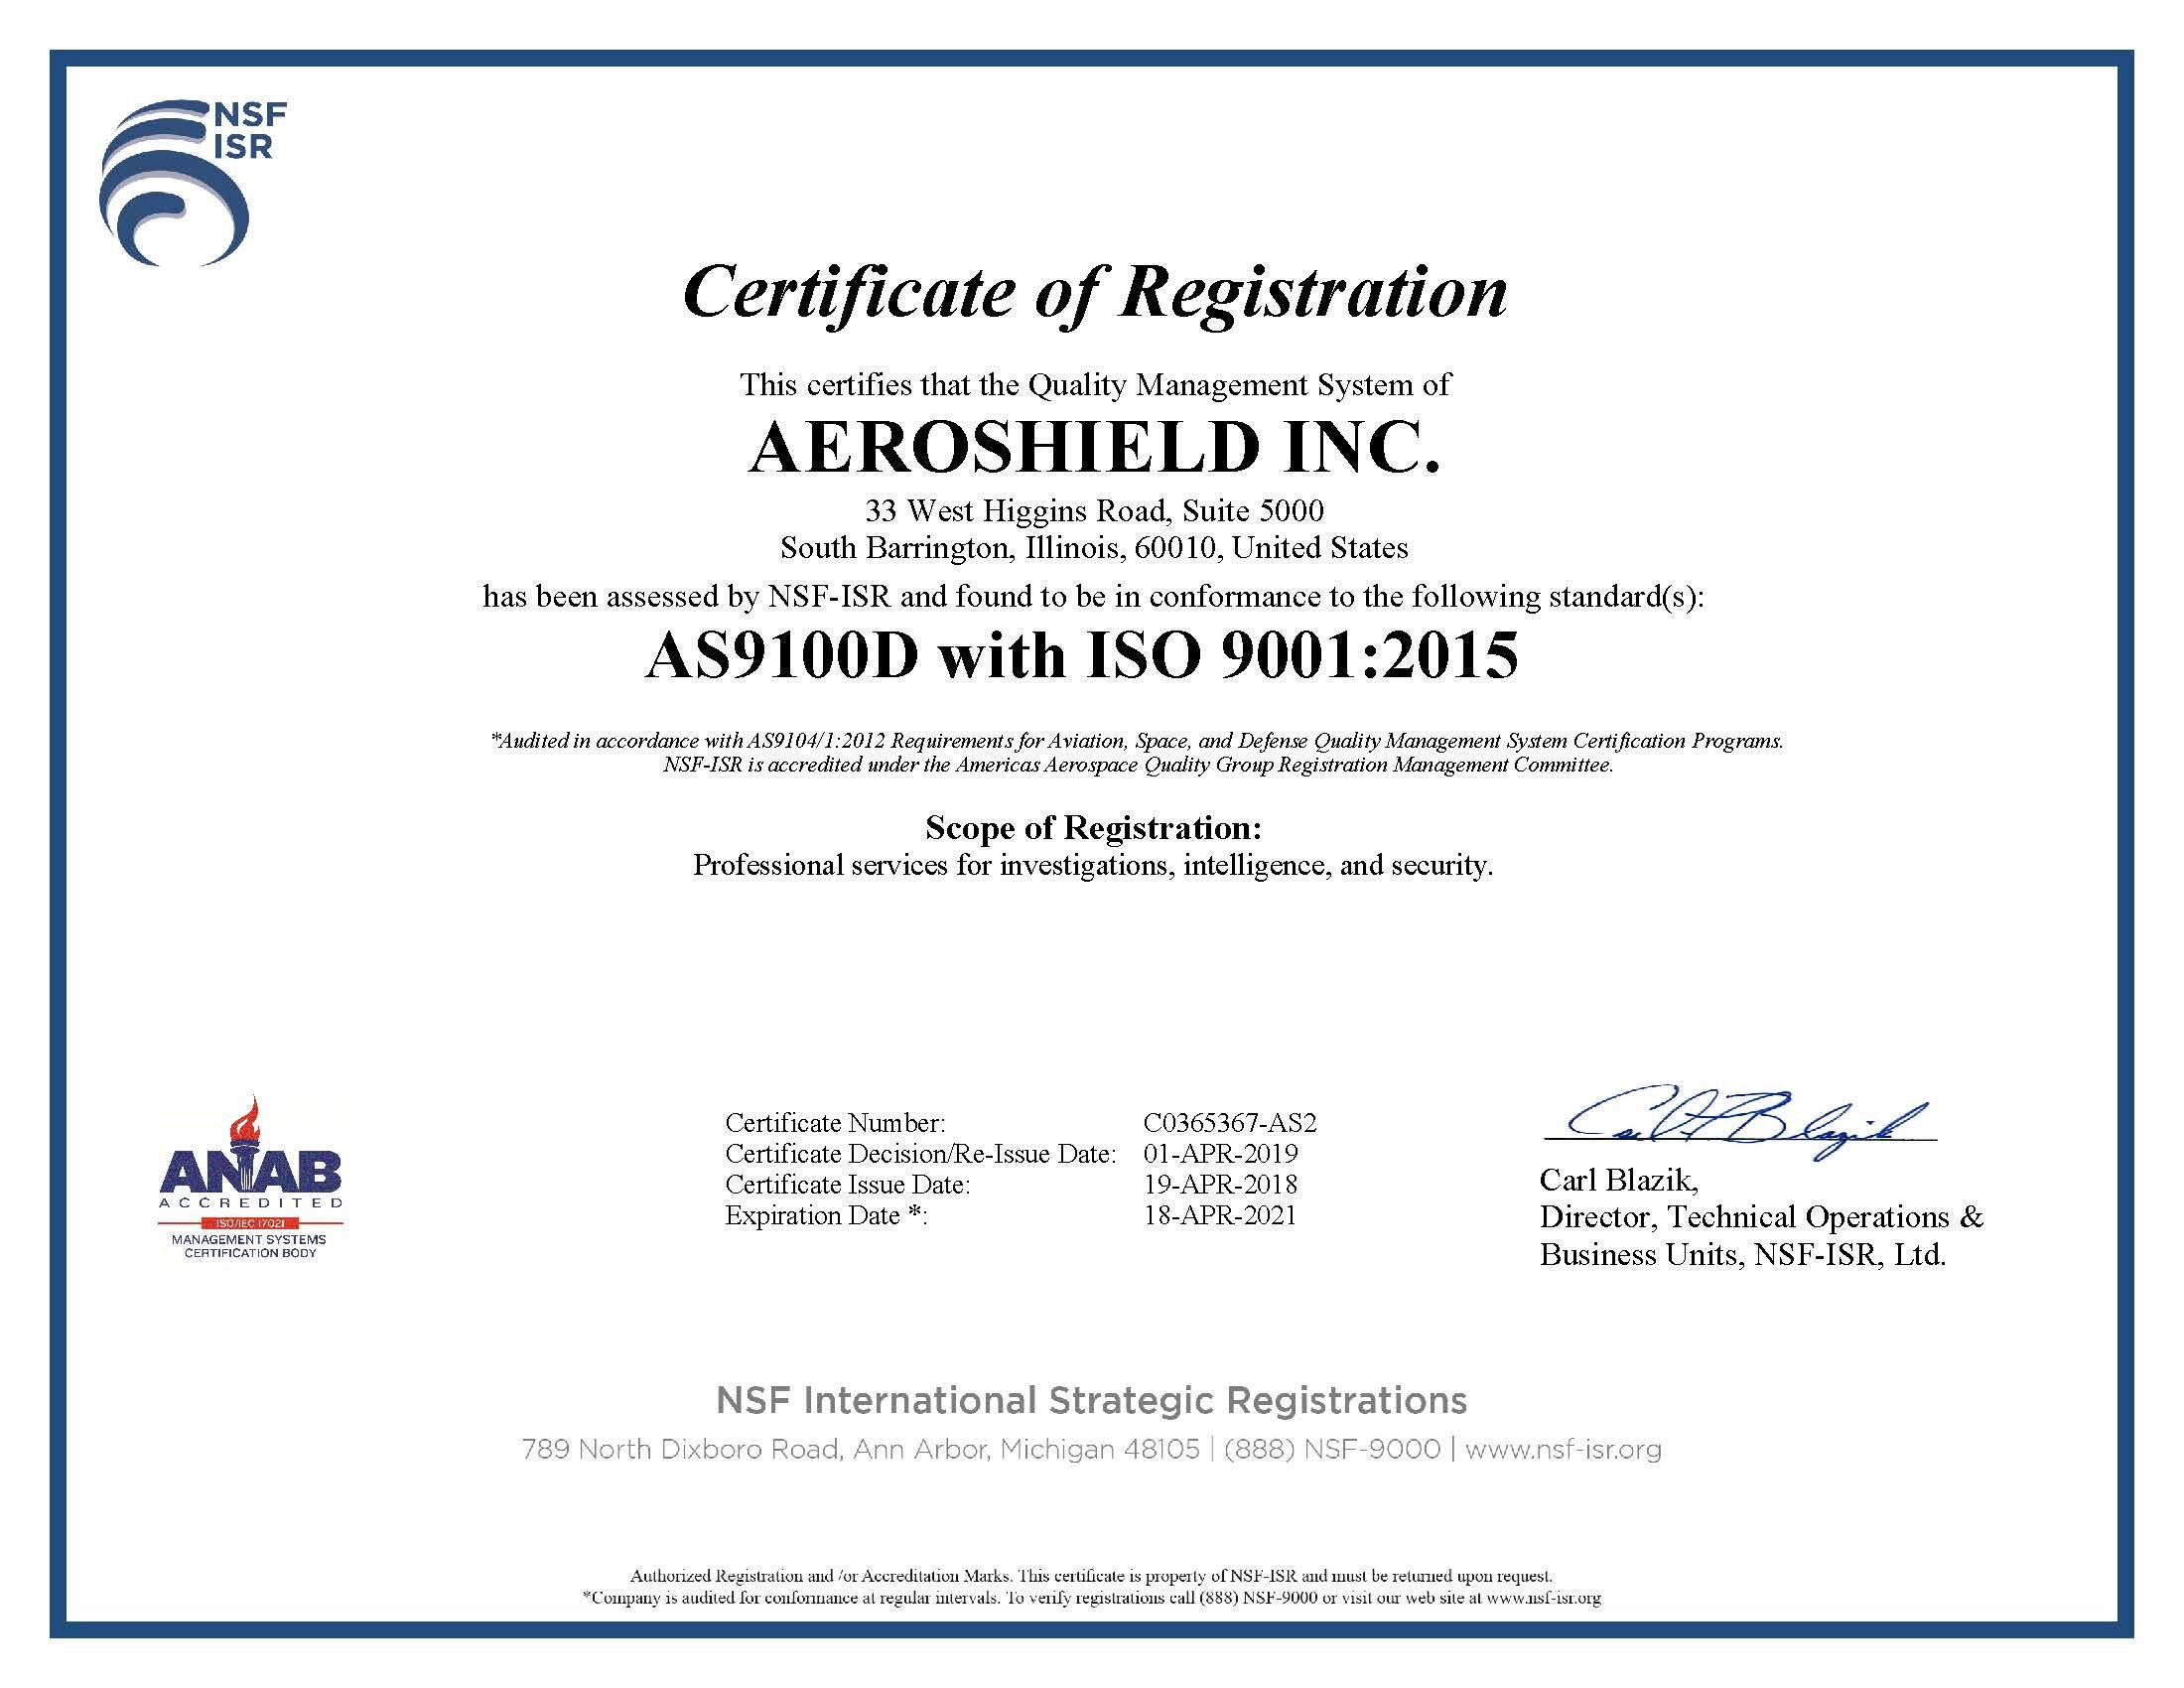 AS9100D Certified with ISO9001:2015